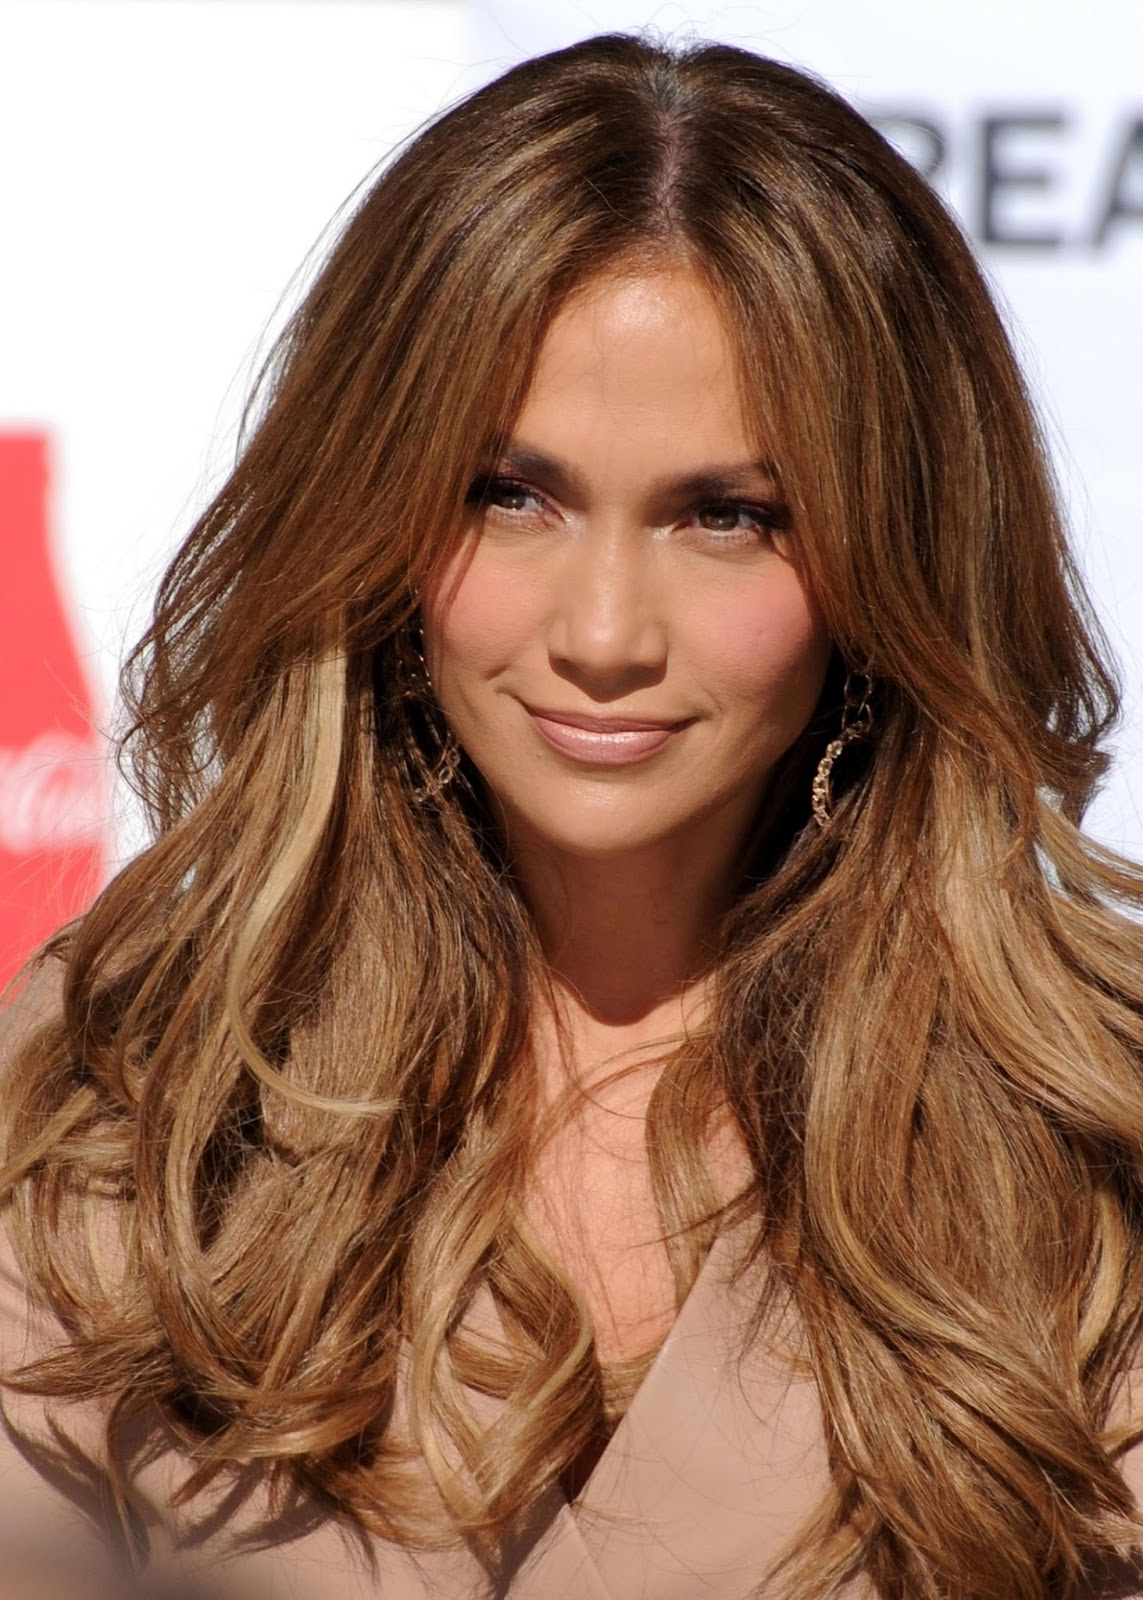 Best Hair Color Chart For Skin Tone To Look Fablous,What Two Colors Make Violet Purple